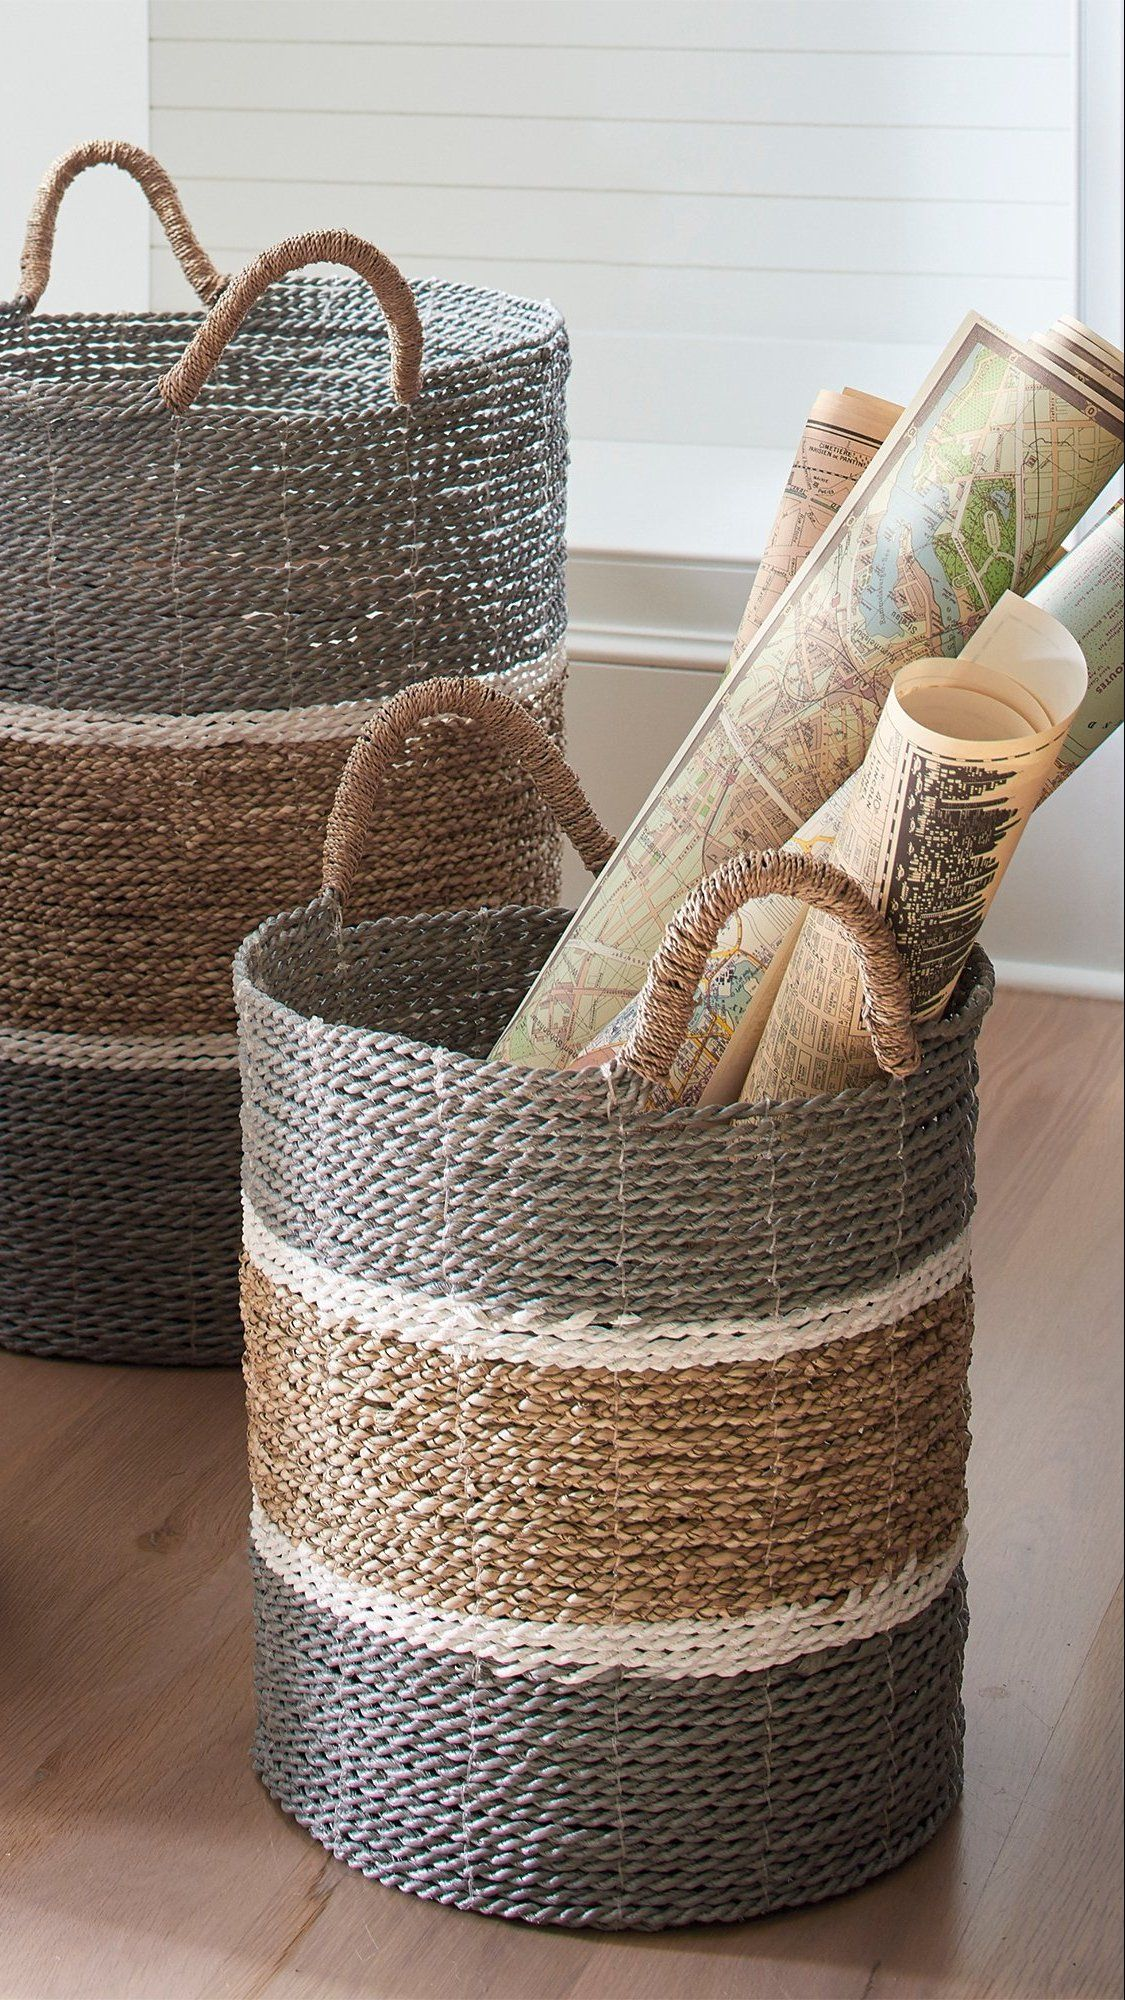 Grab these jambi baskets fast because theye made of everyone favorite basket material distinctive richly colored seagrass handwoven by skilled